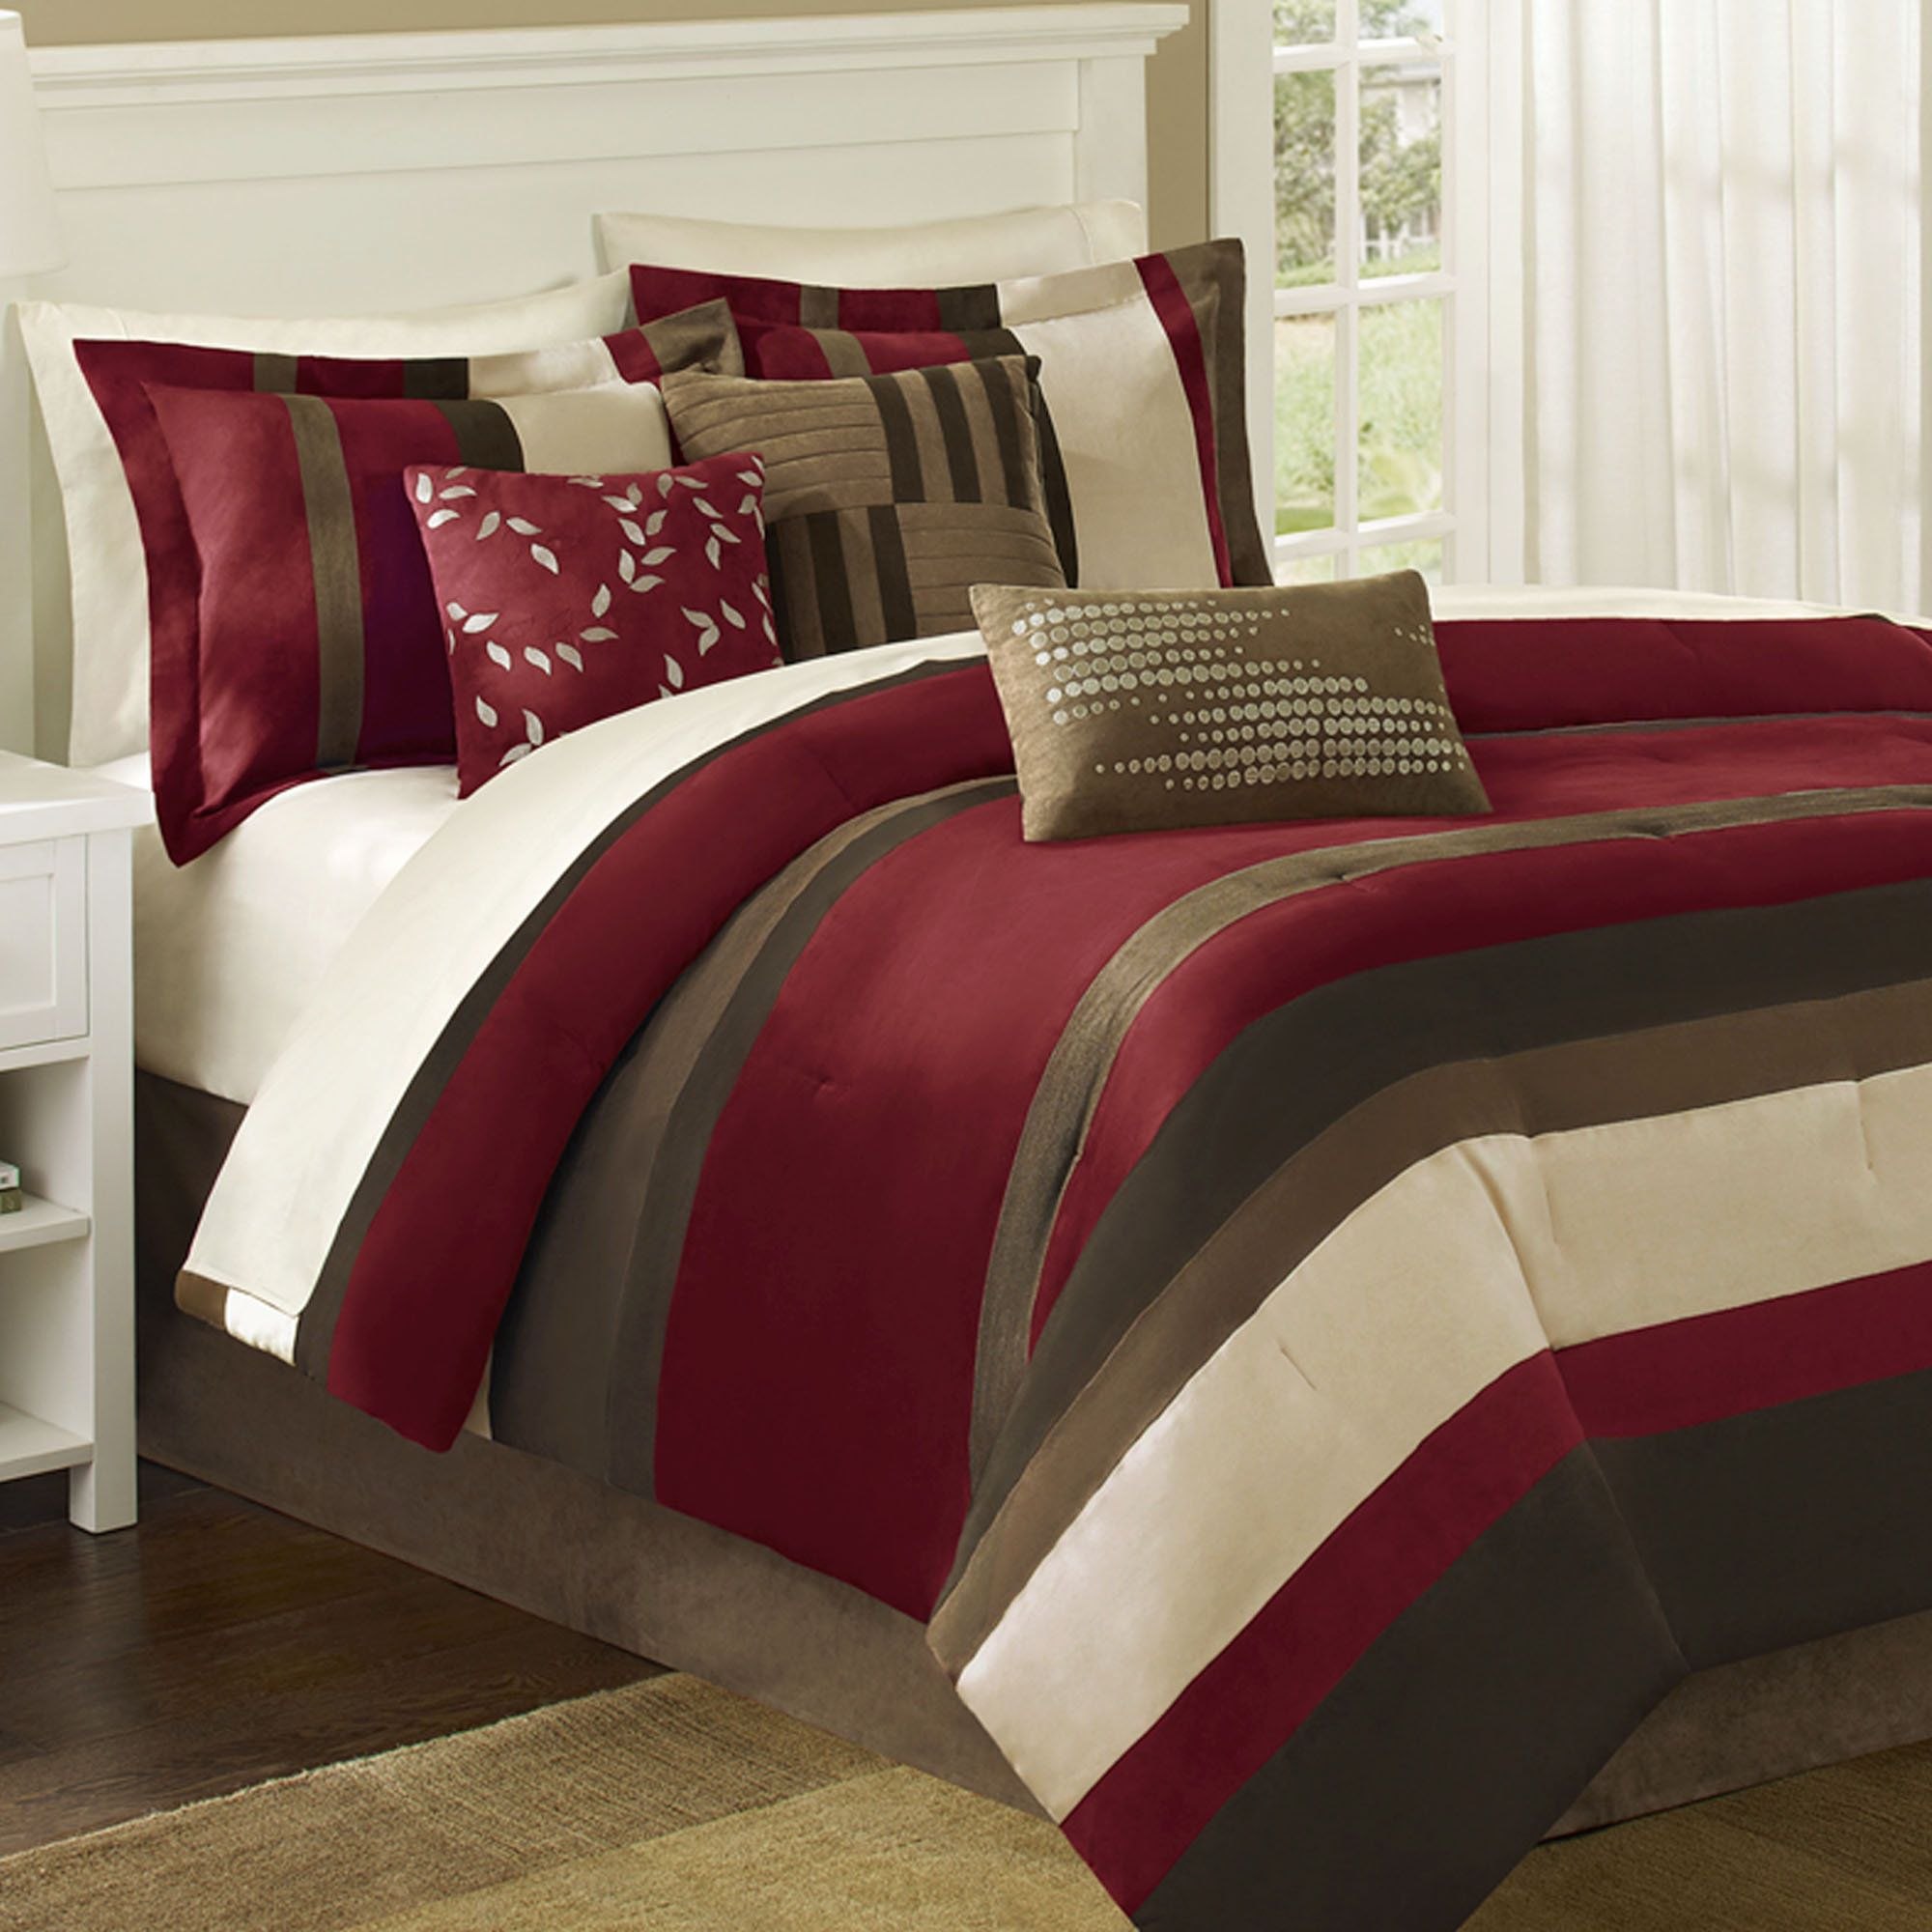 dark bed p bedding set red queen comforter lorenza velvet medallion